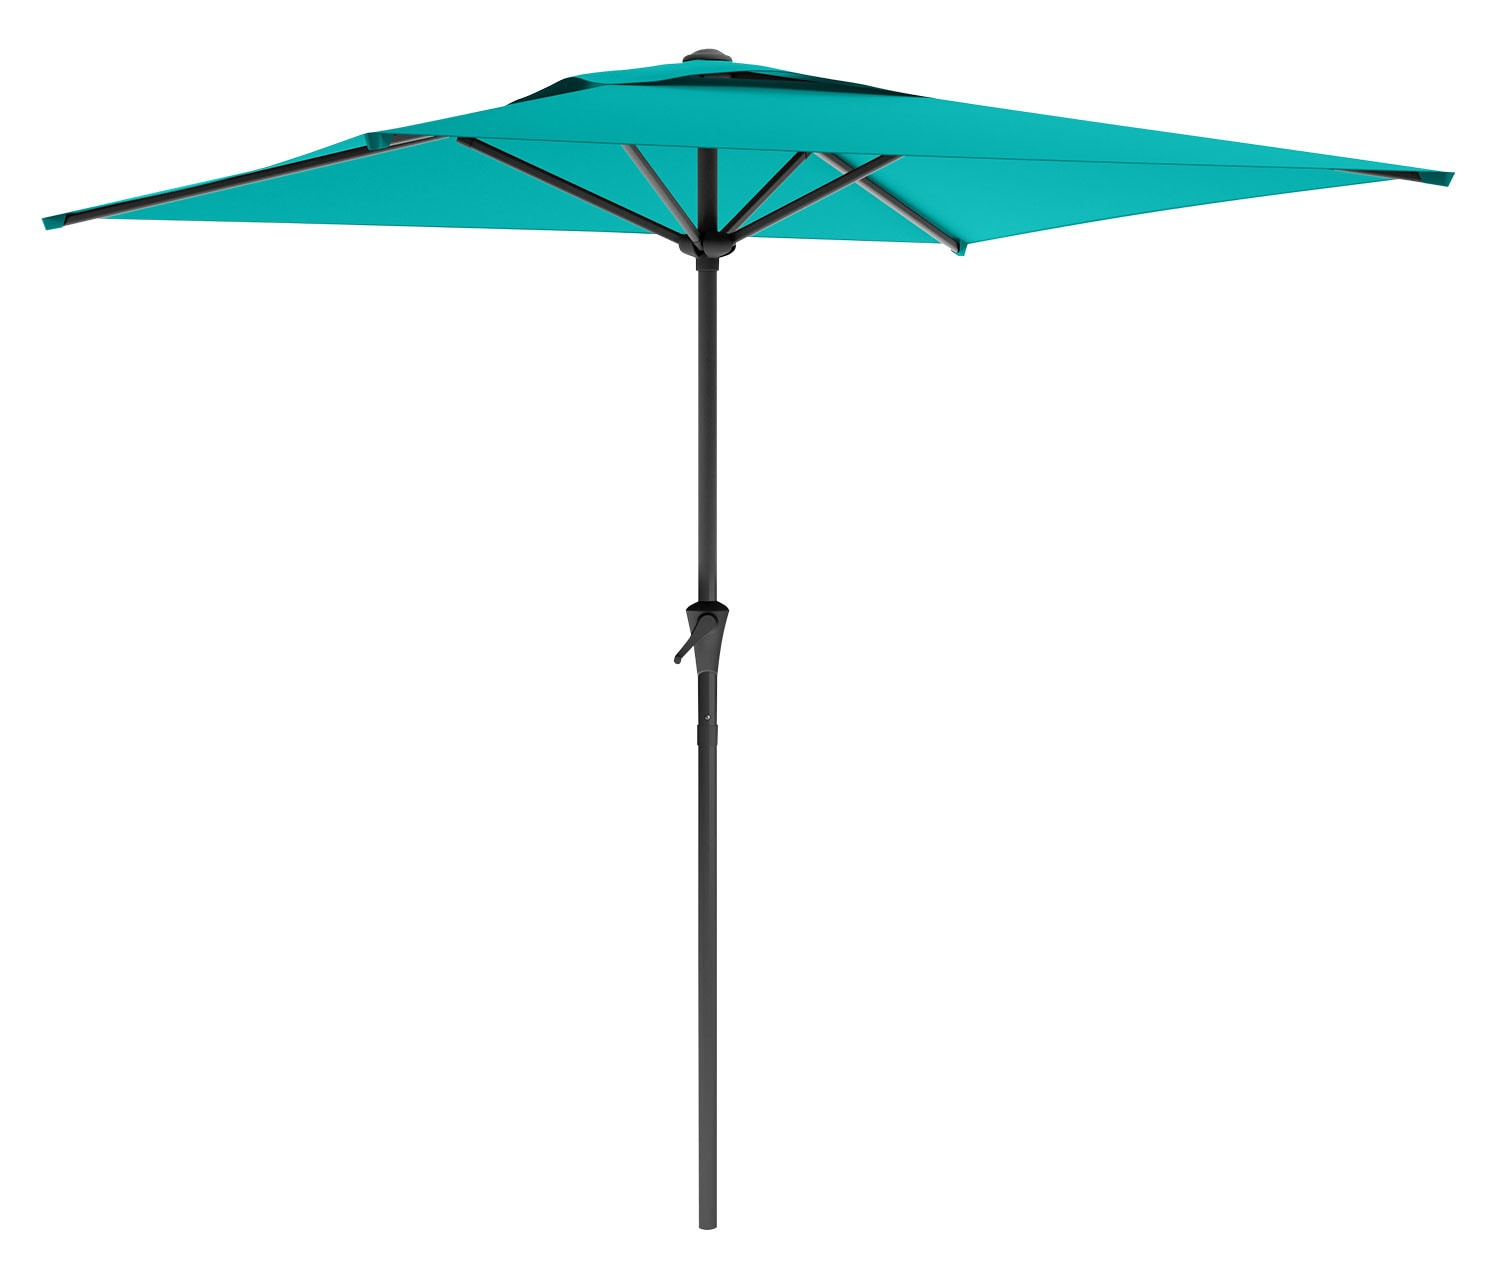 Outdoor Furniture - Square Patio Umbrella – Turquoise Blue